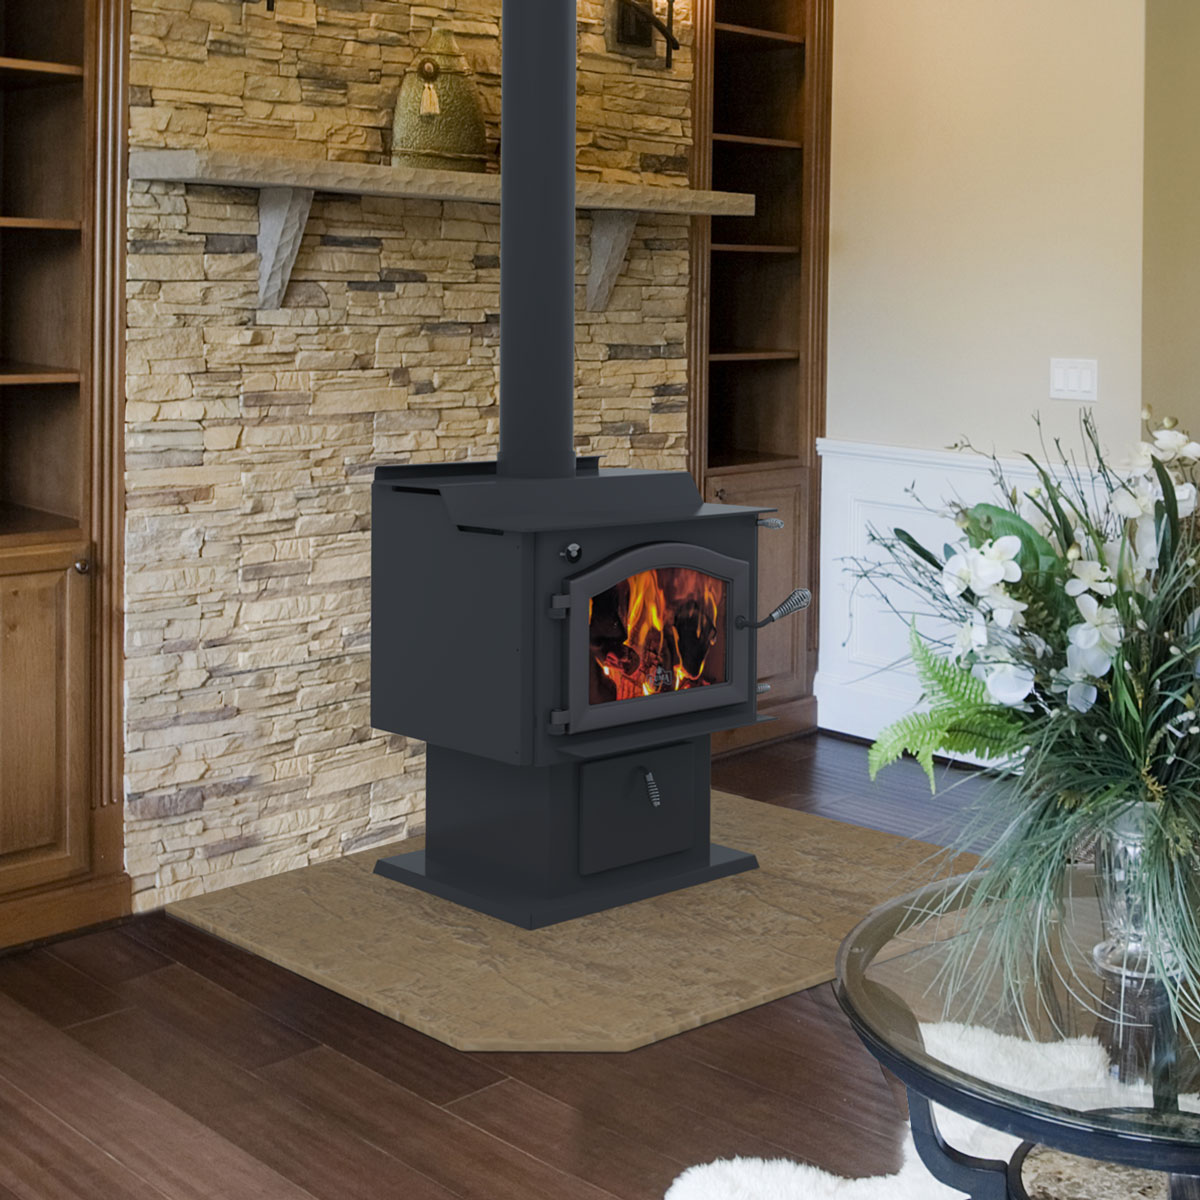 Kuma Tamarack wood stove, made in the USA